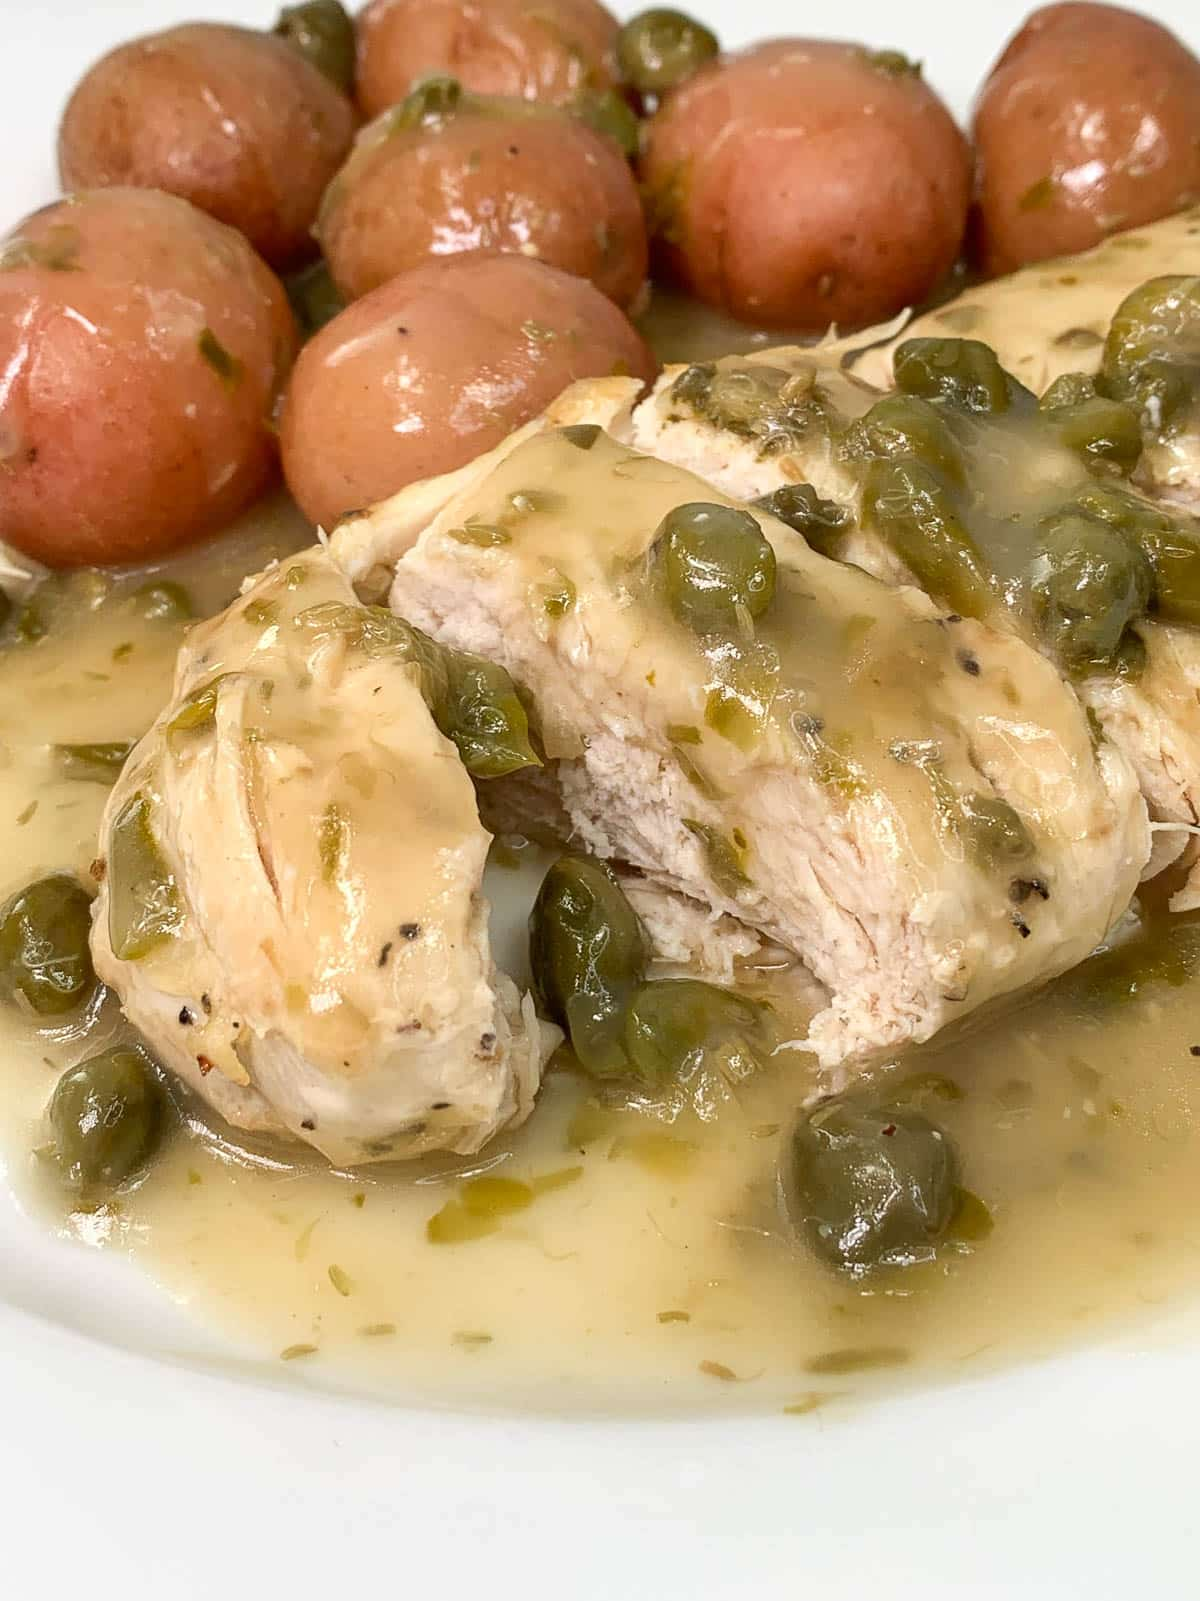 chicken piccata made in slow cooker with lemon sauce and capers